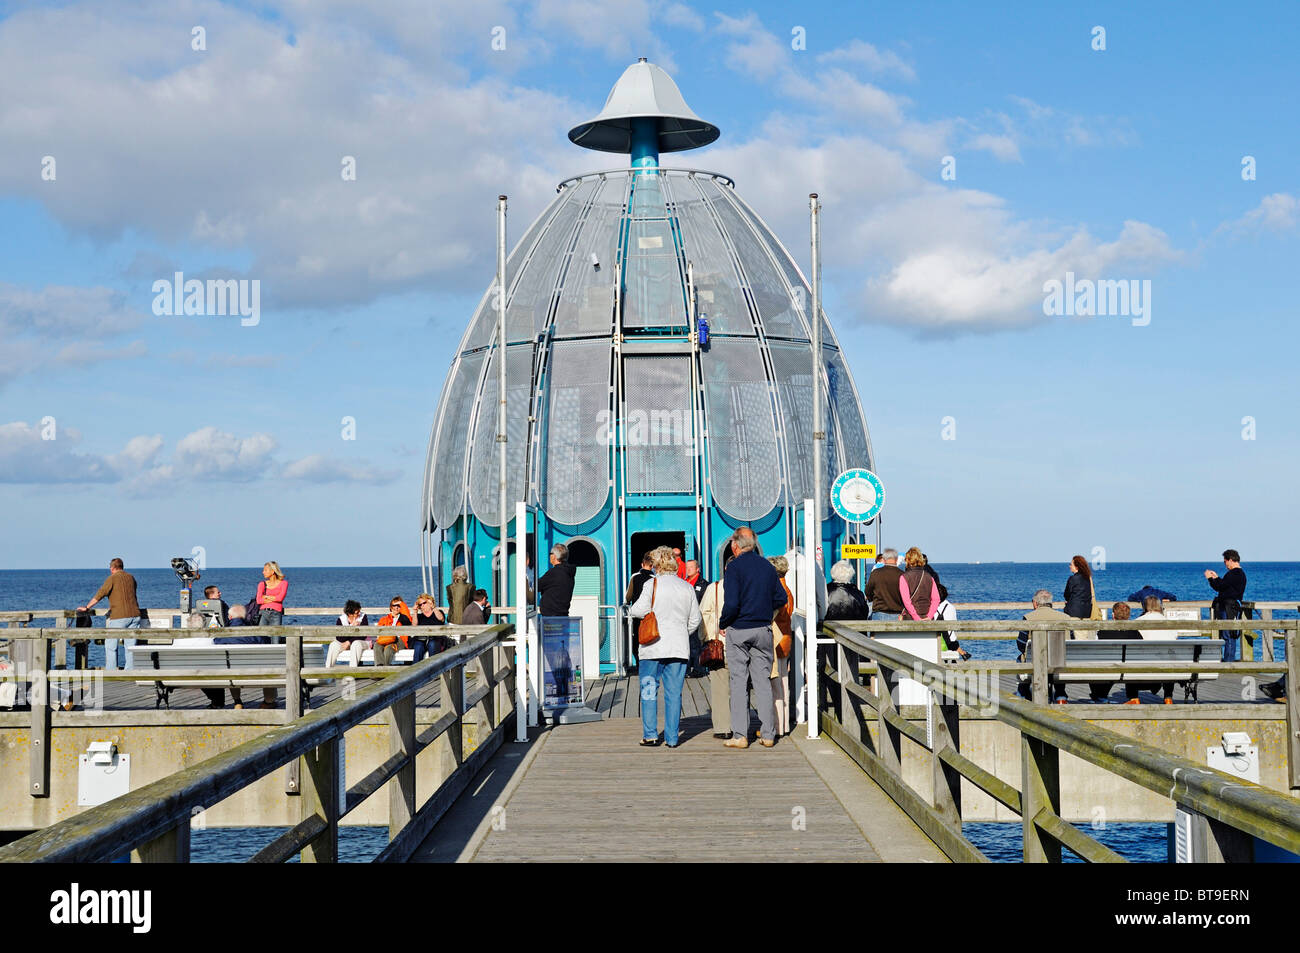 Diving bell at the pier in the baltic resort sellin for Sellin rugen